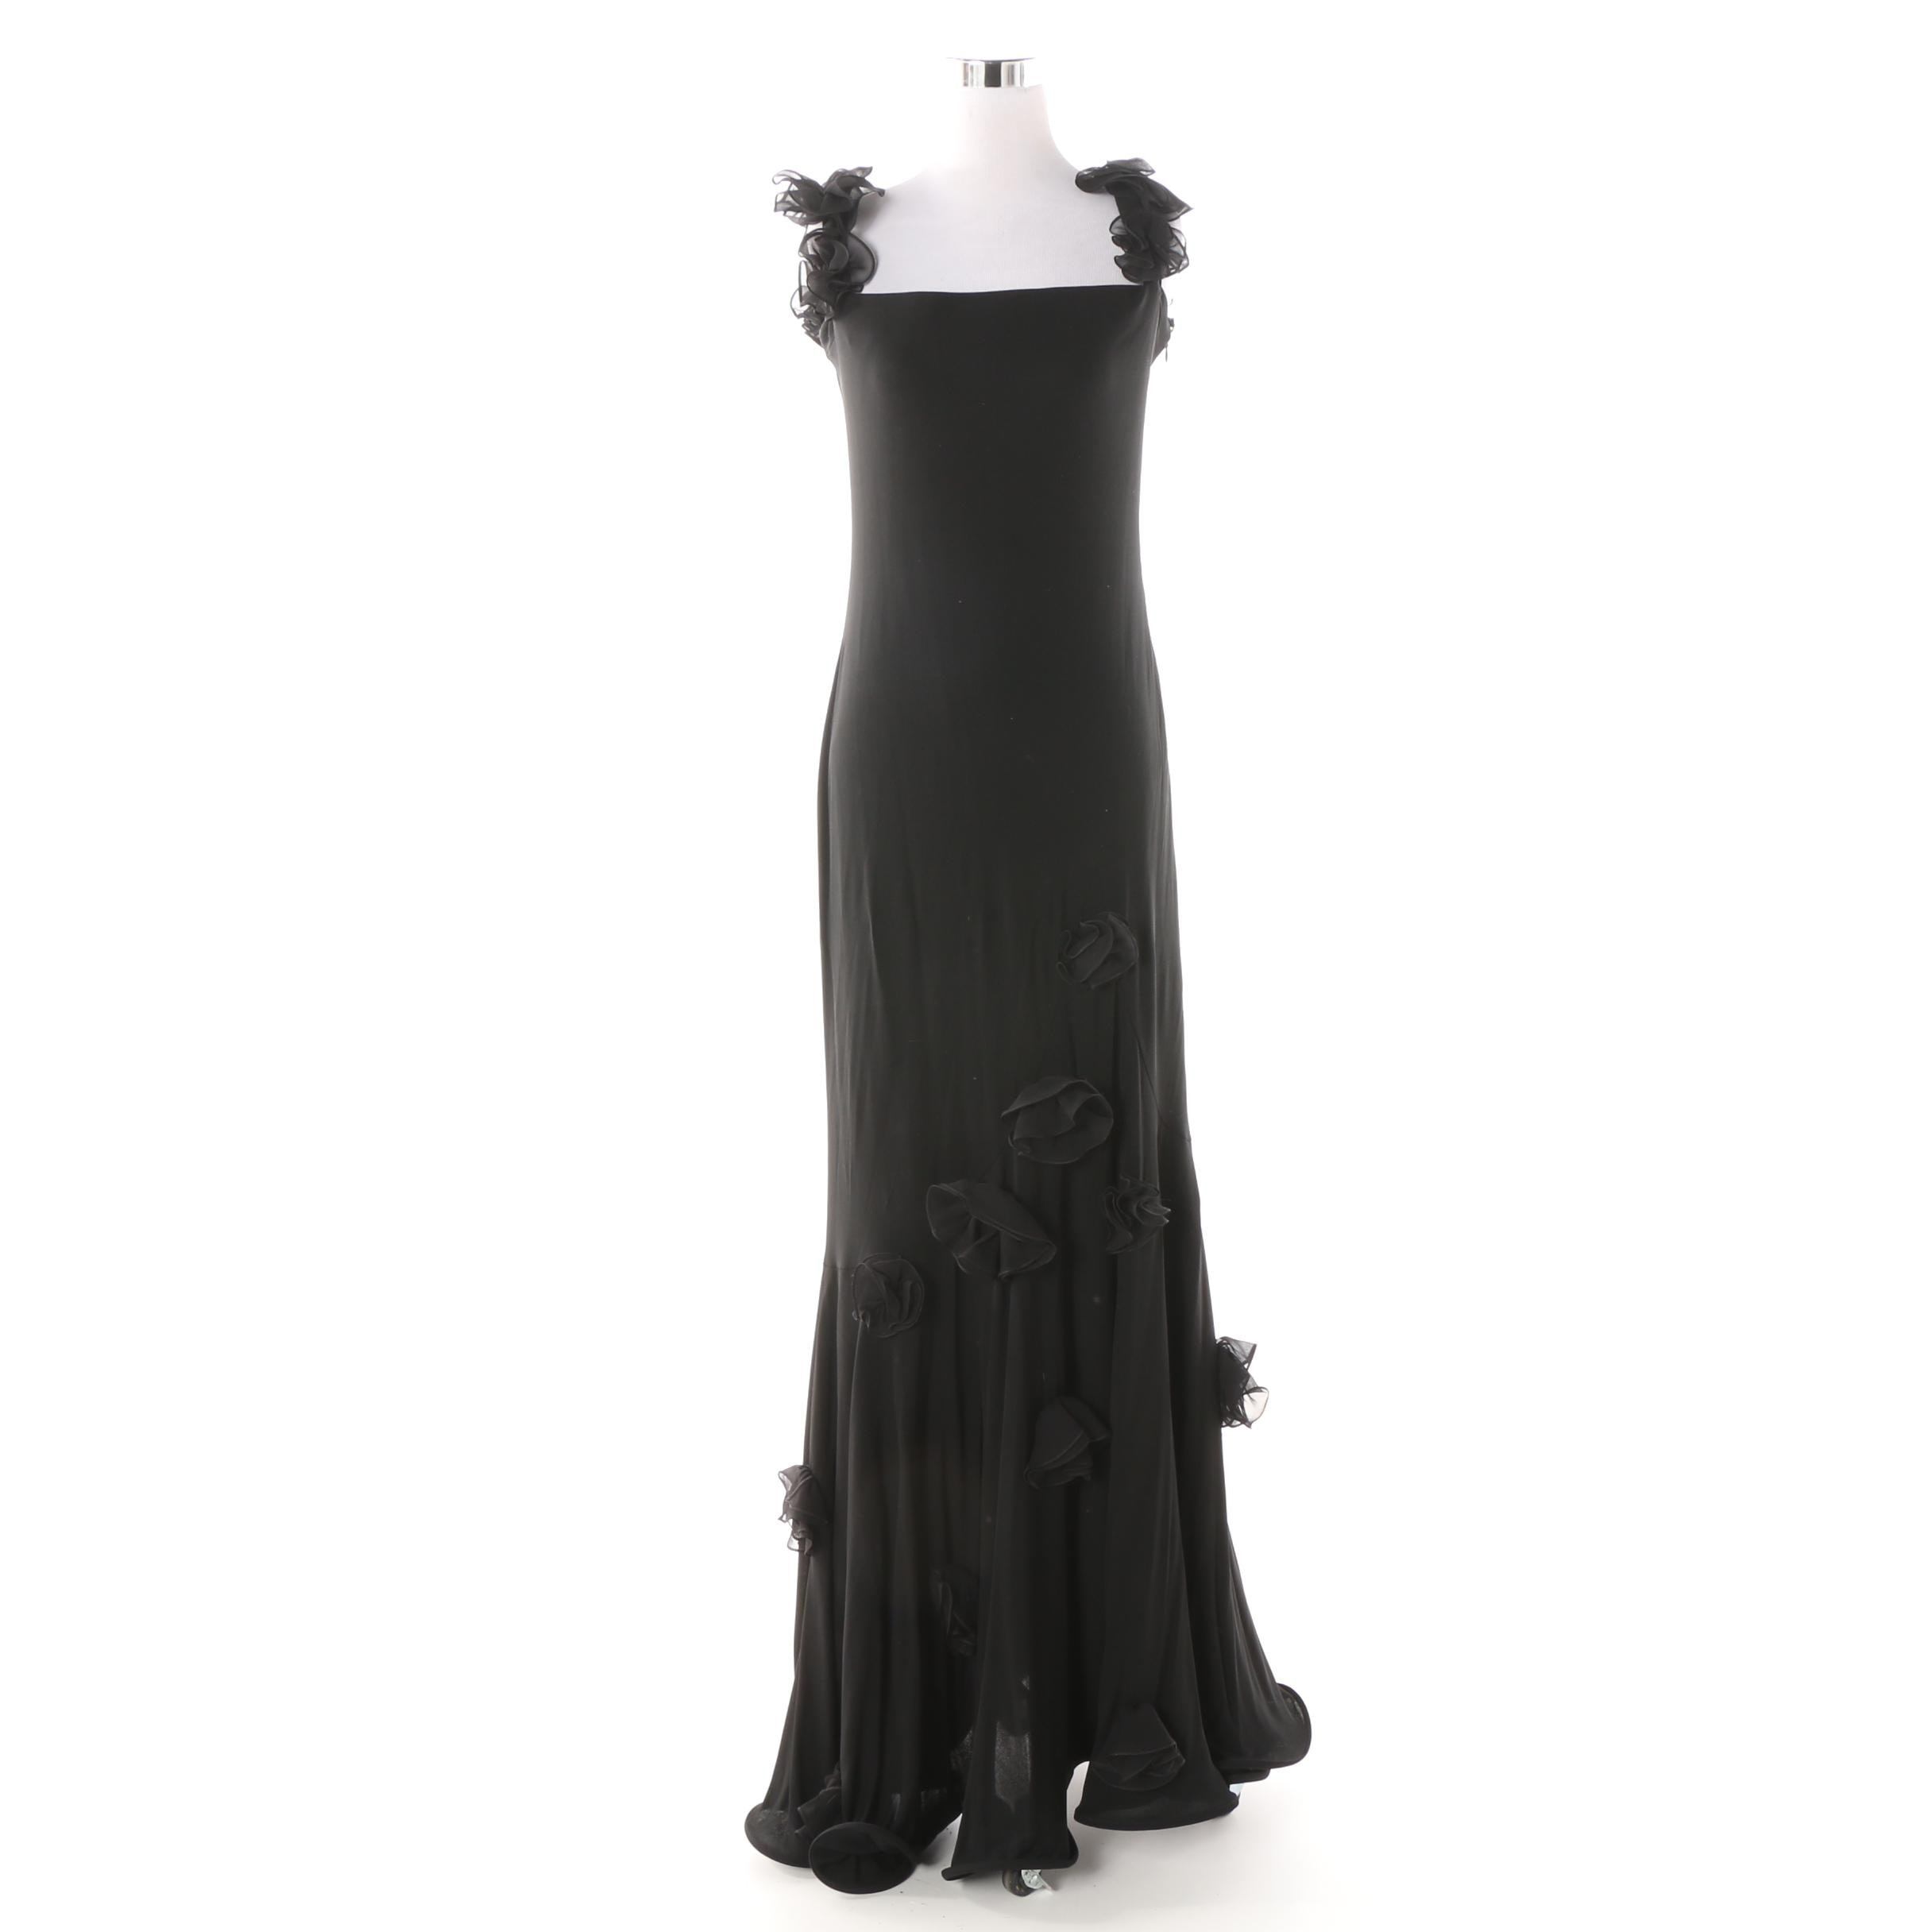 Frivole Black Sleeveless Evening Dress with Applied Fabric Rosettes